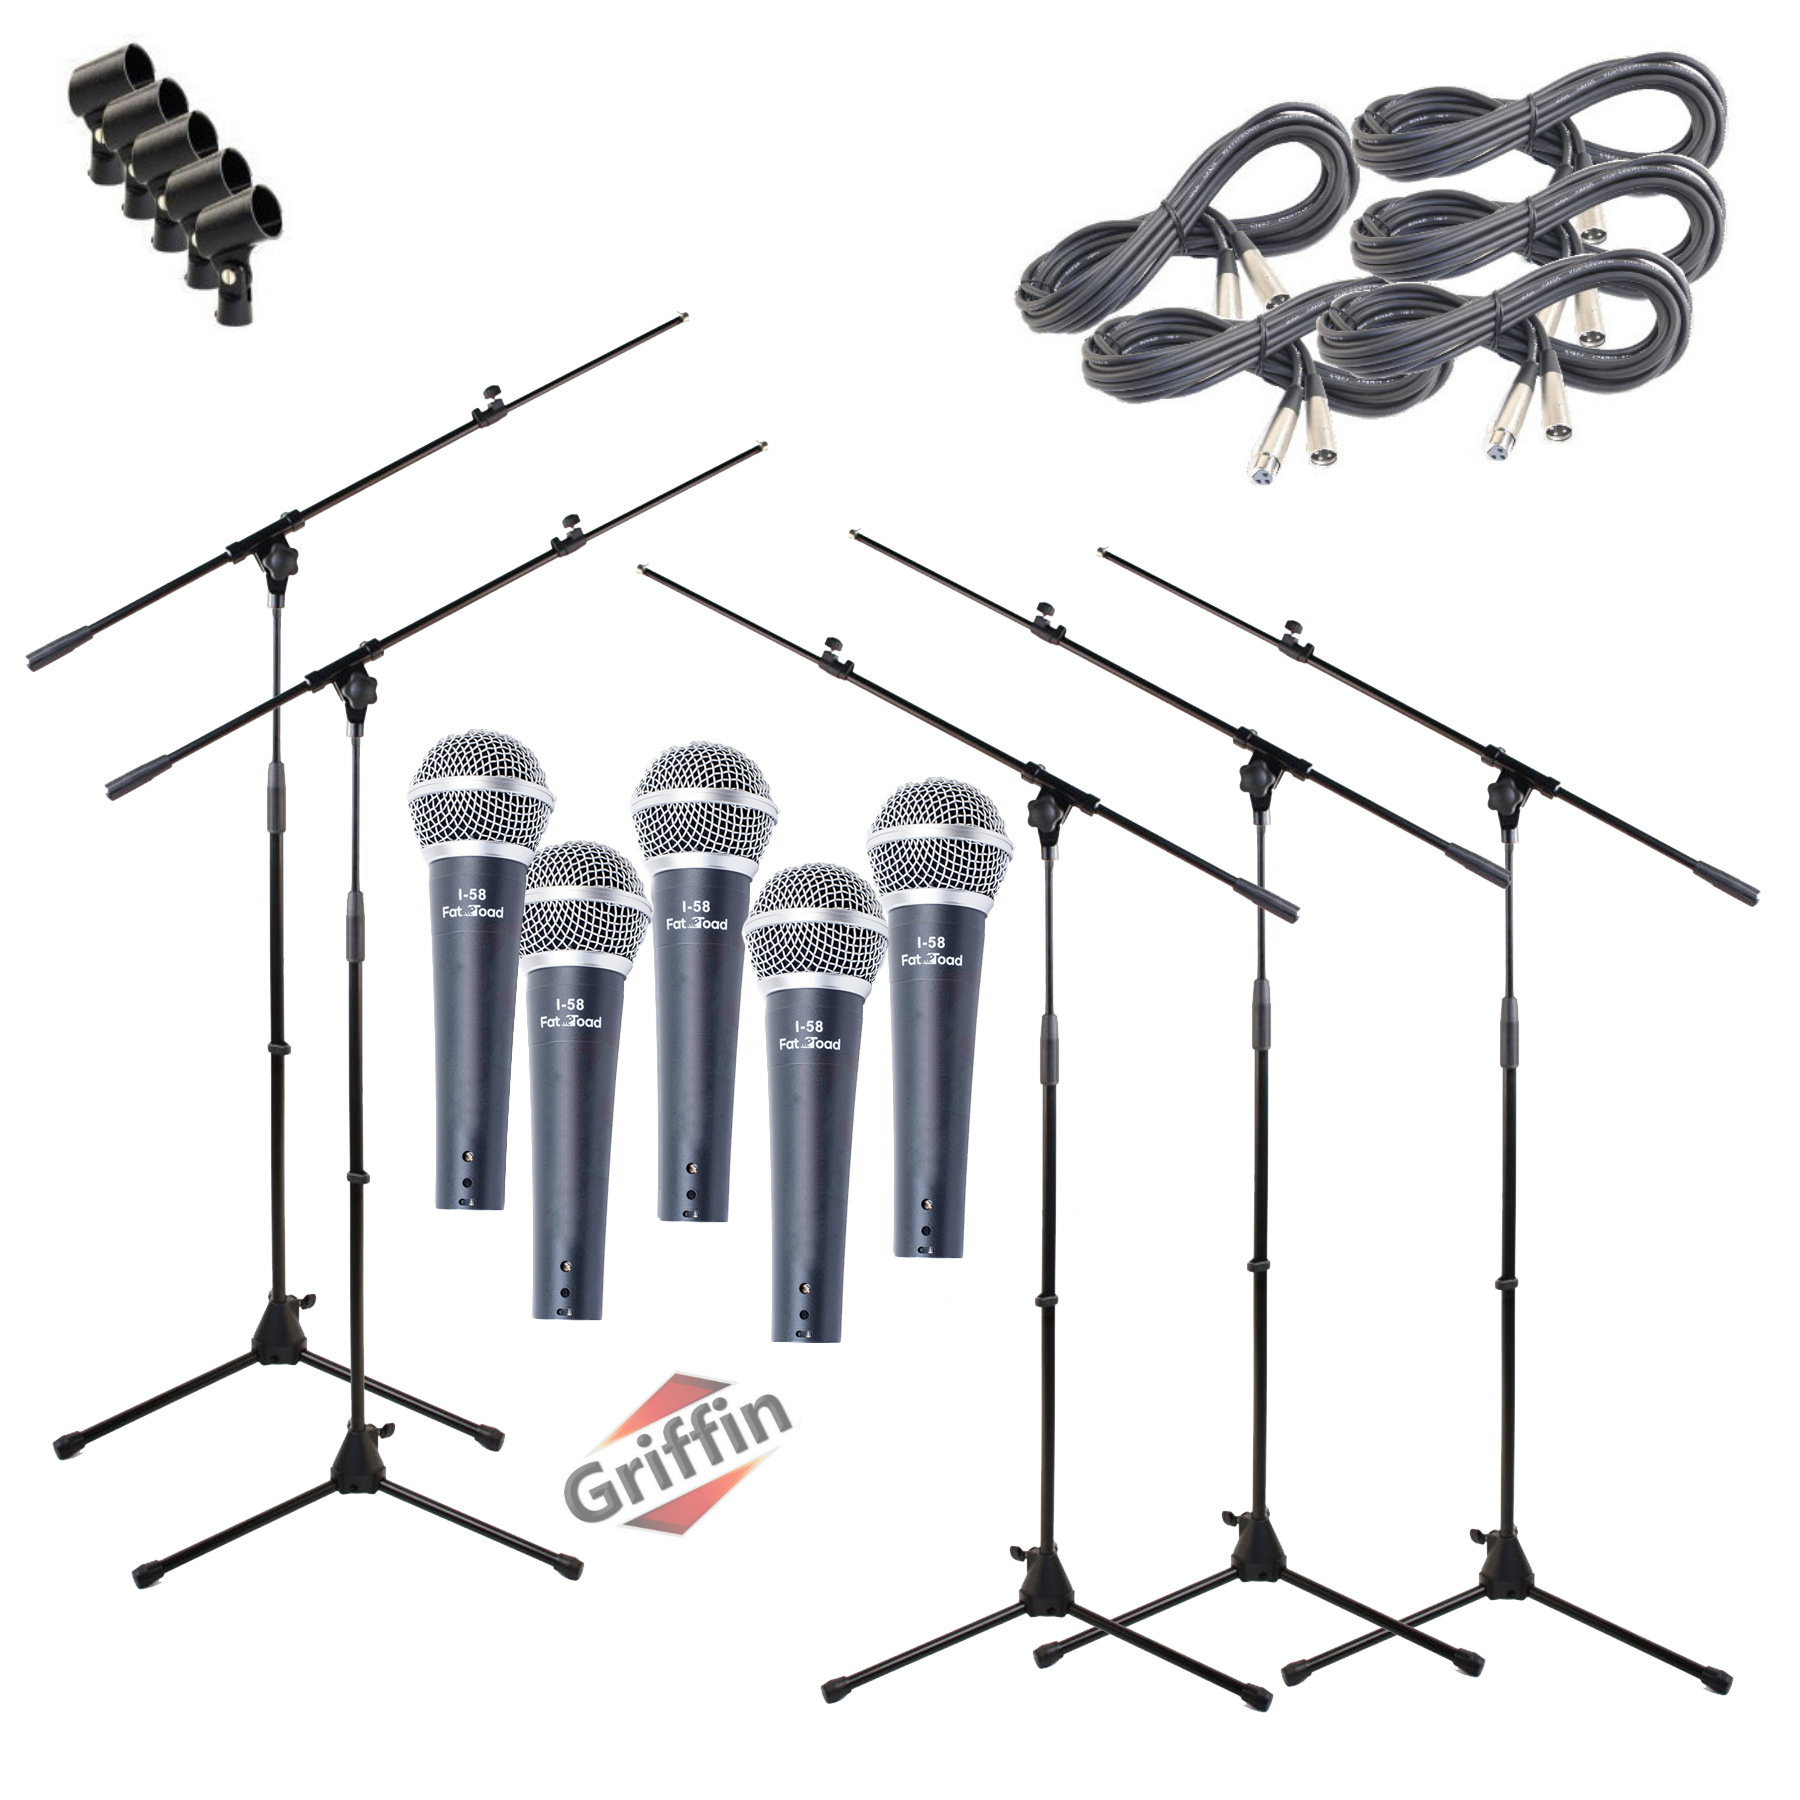 unidirectional microphone packages with mic boom stands  xlr cables and clips 5 pack by griffin